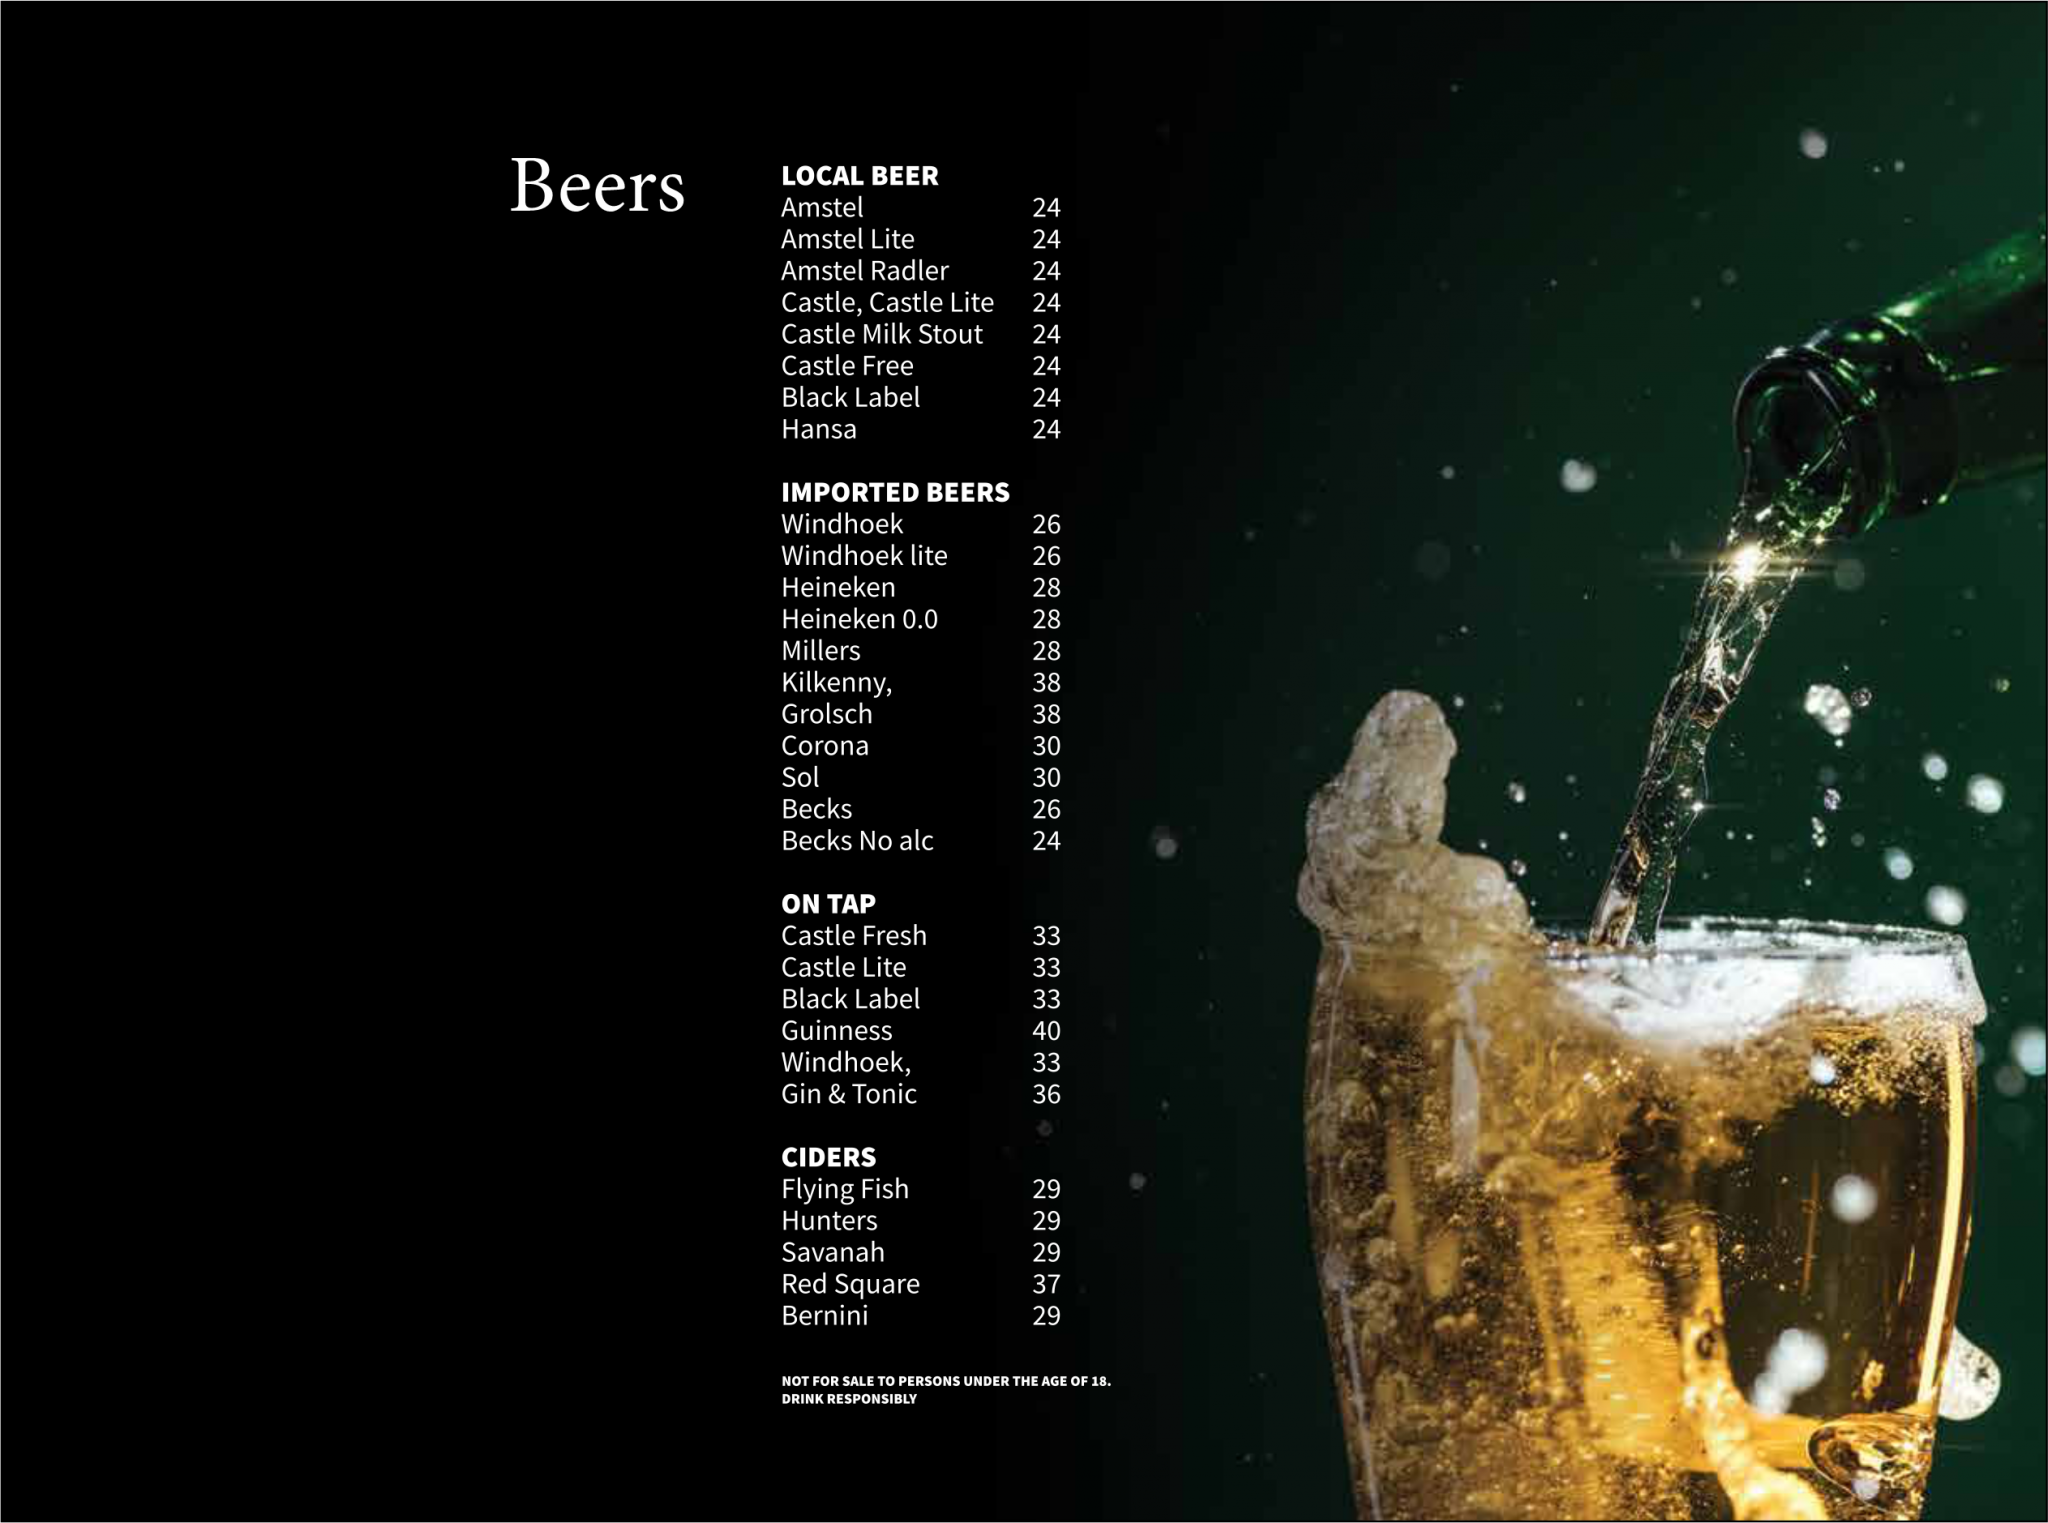 beers_menu_slidea